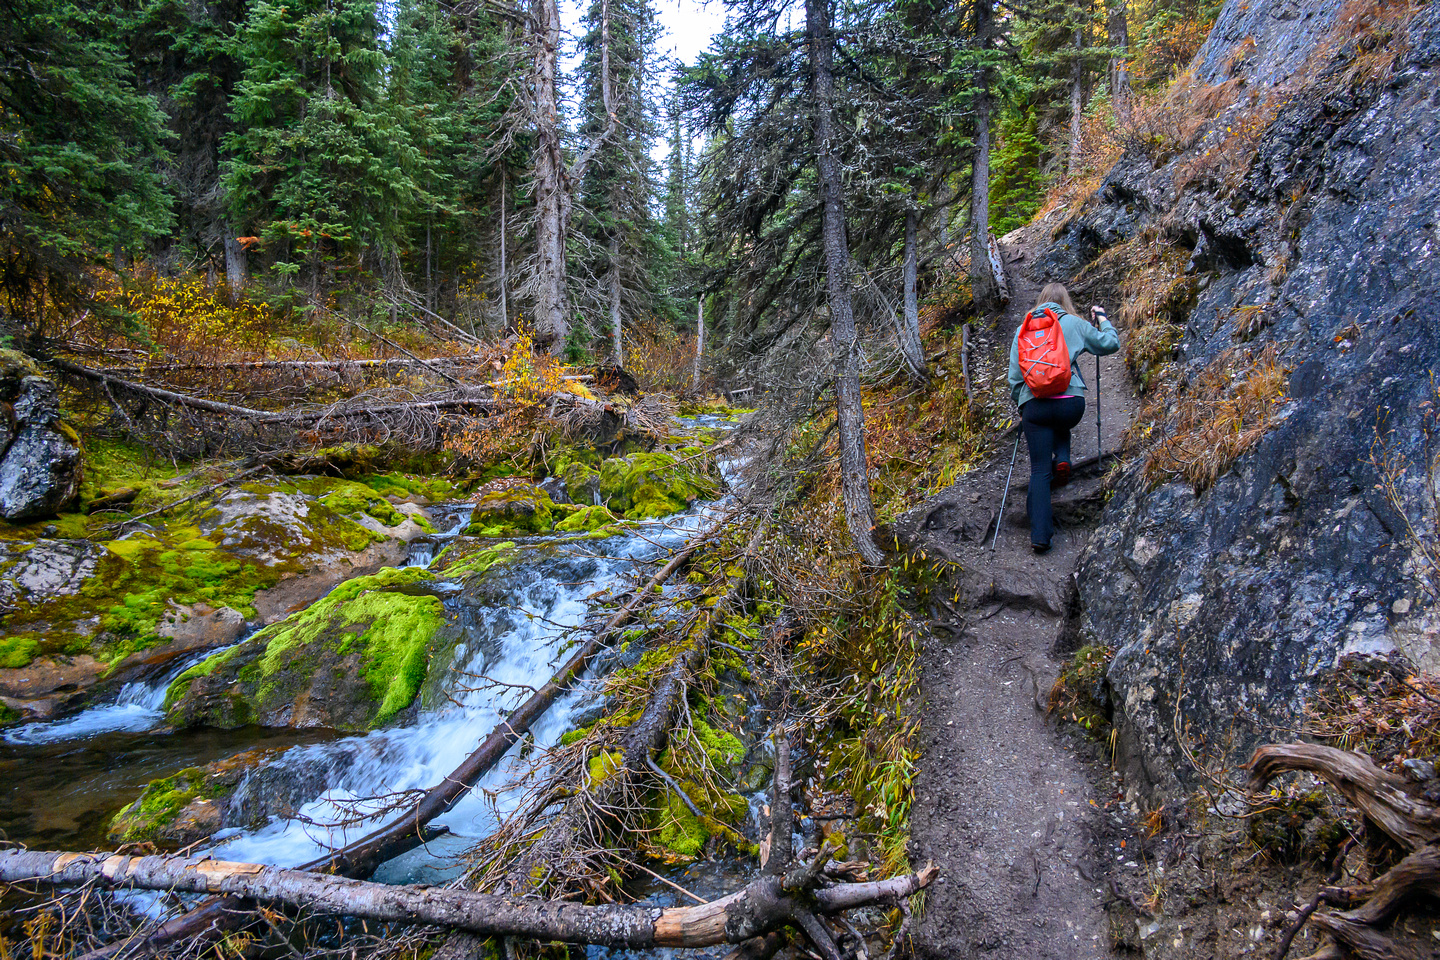 The trail narrows and grows muddy along Commonwealth Creek.